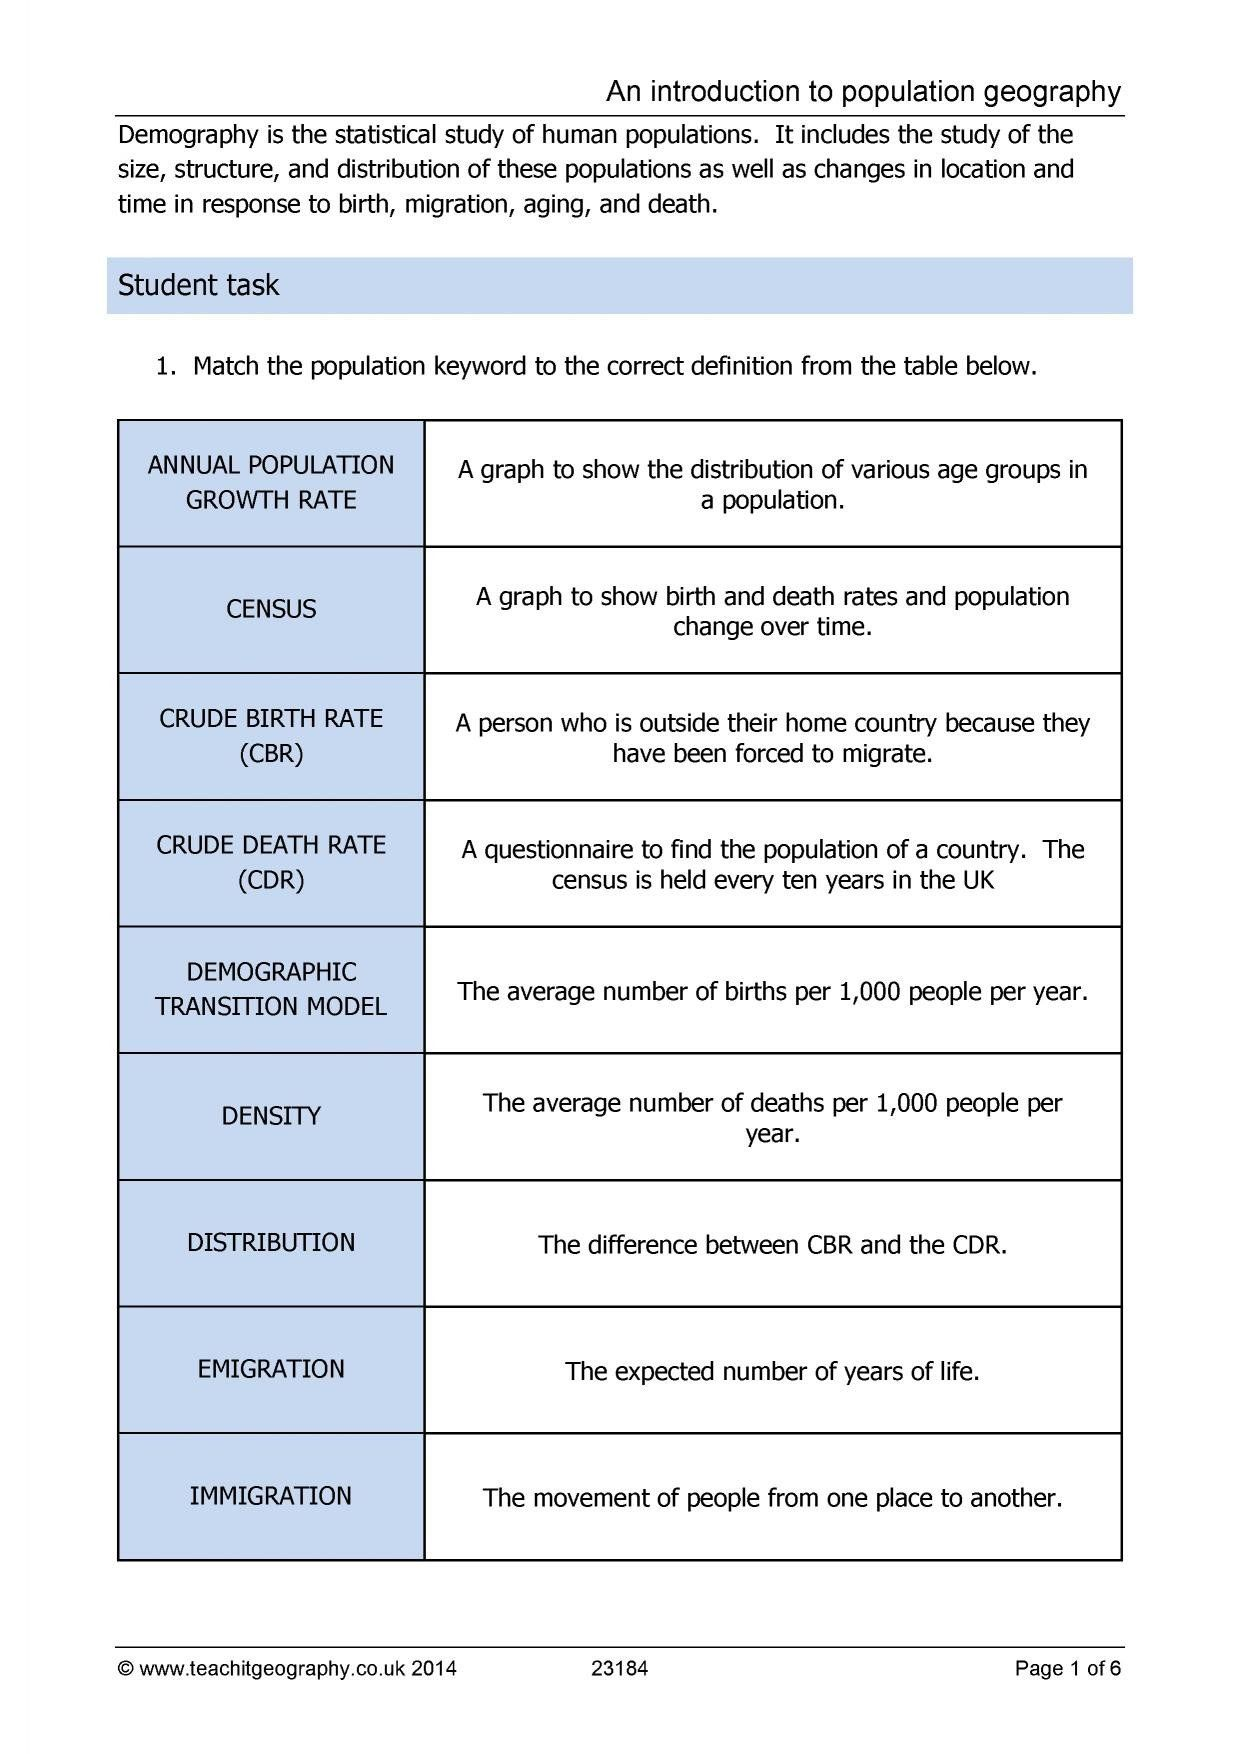 Demographic Transition Model Worksheet Answers Population